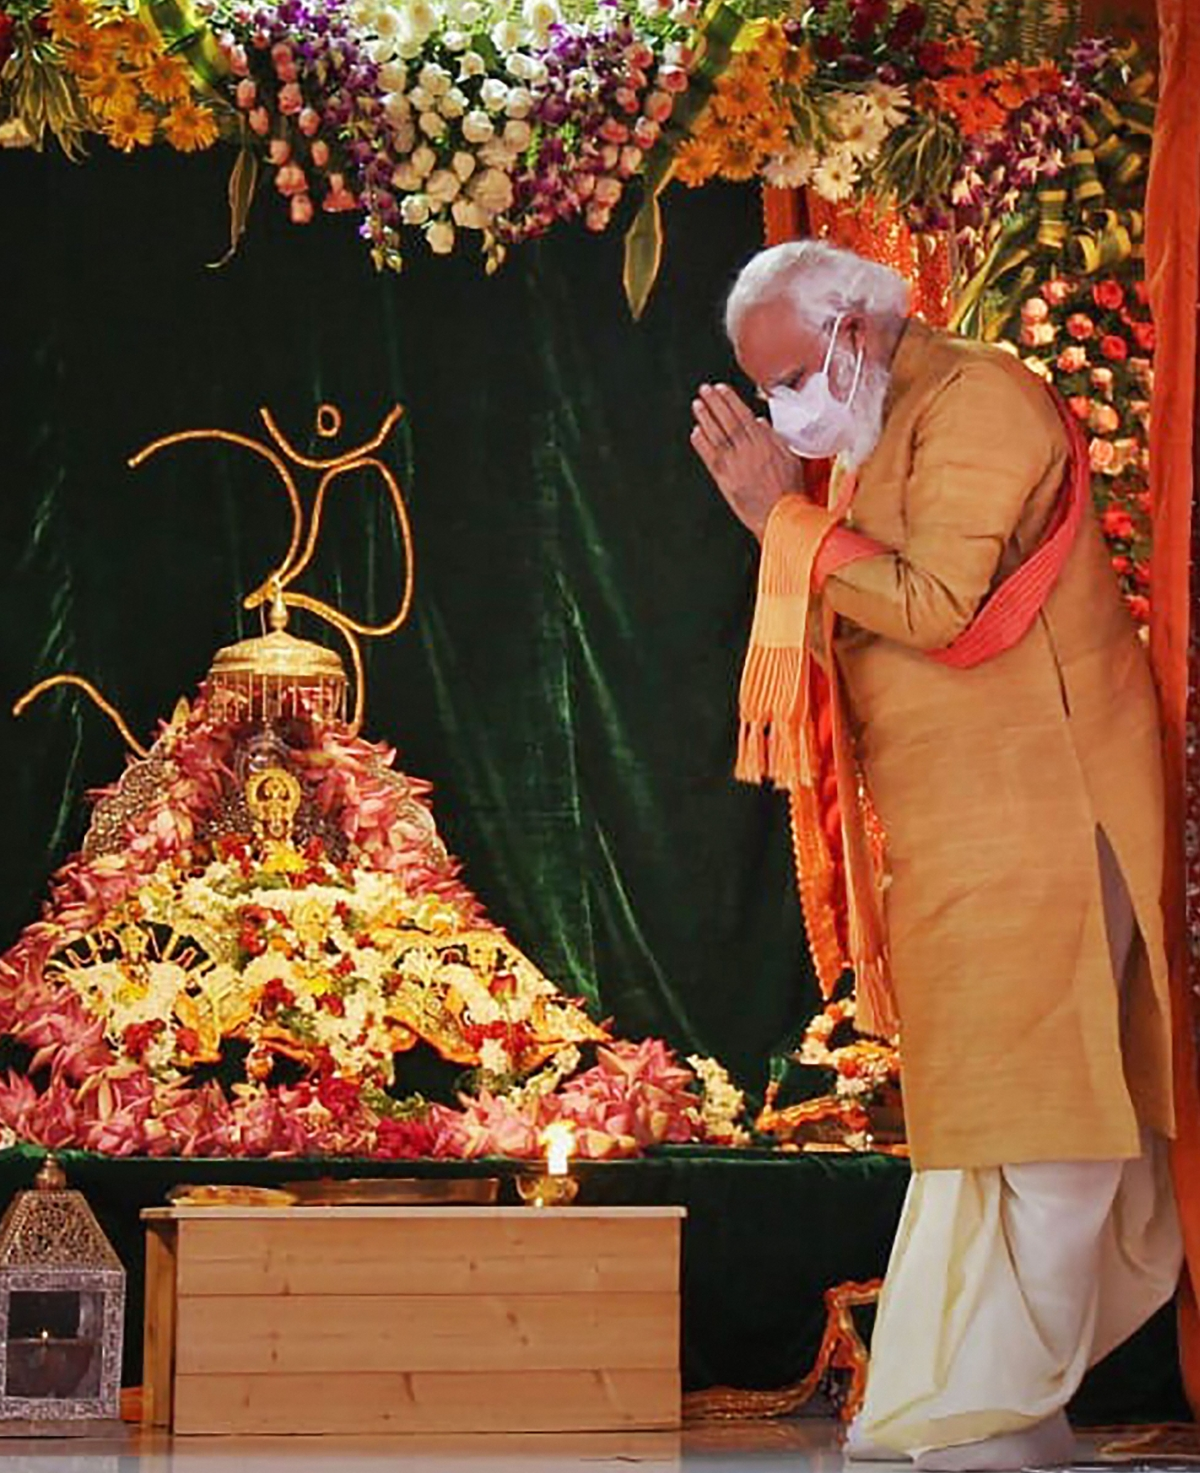 Prime Minister Narendra Modi offers prayers to Ram Lalla at Ram Janmabhoomi site in Ayodhya on Wednesday.